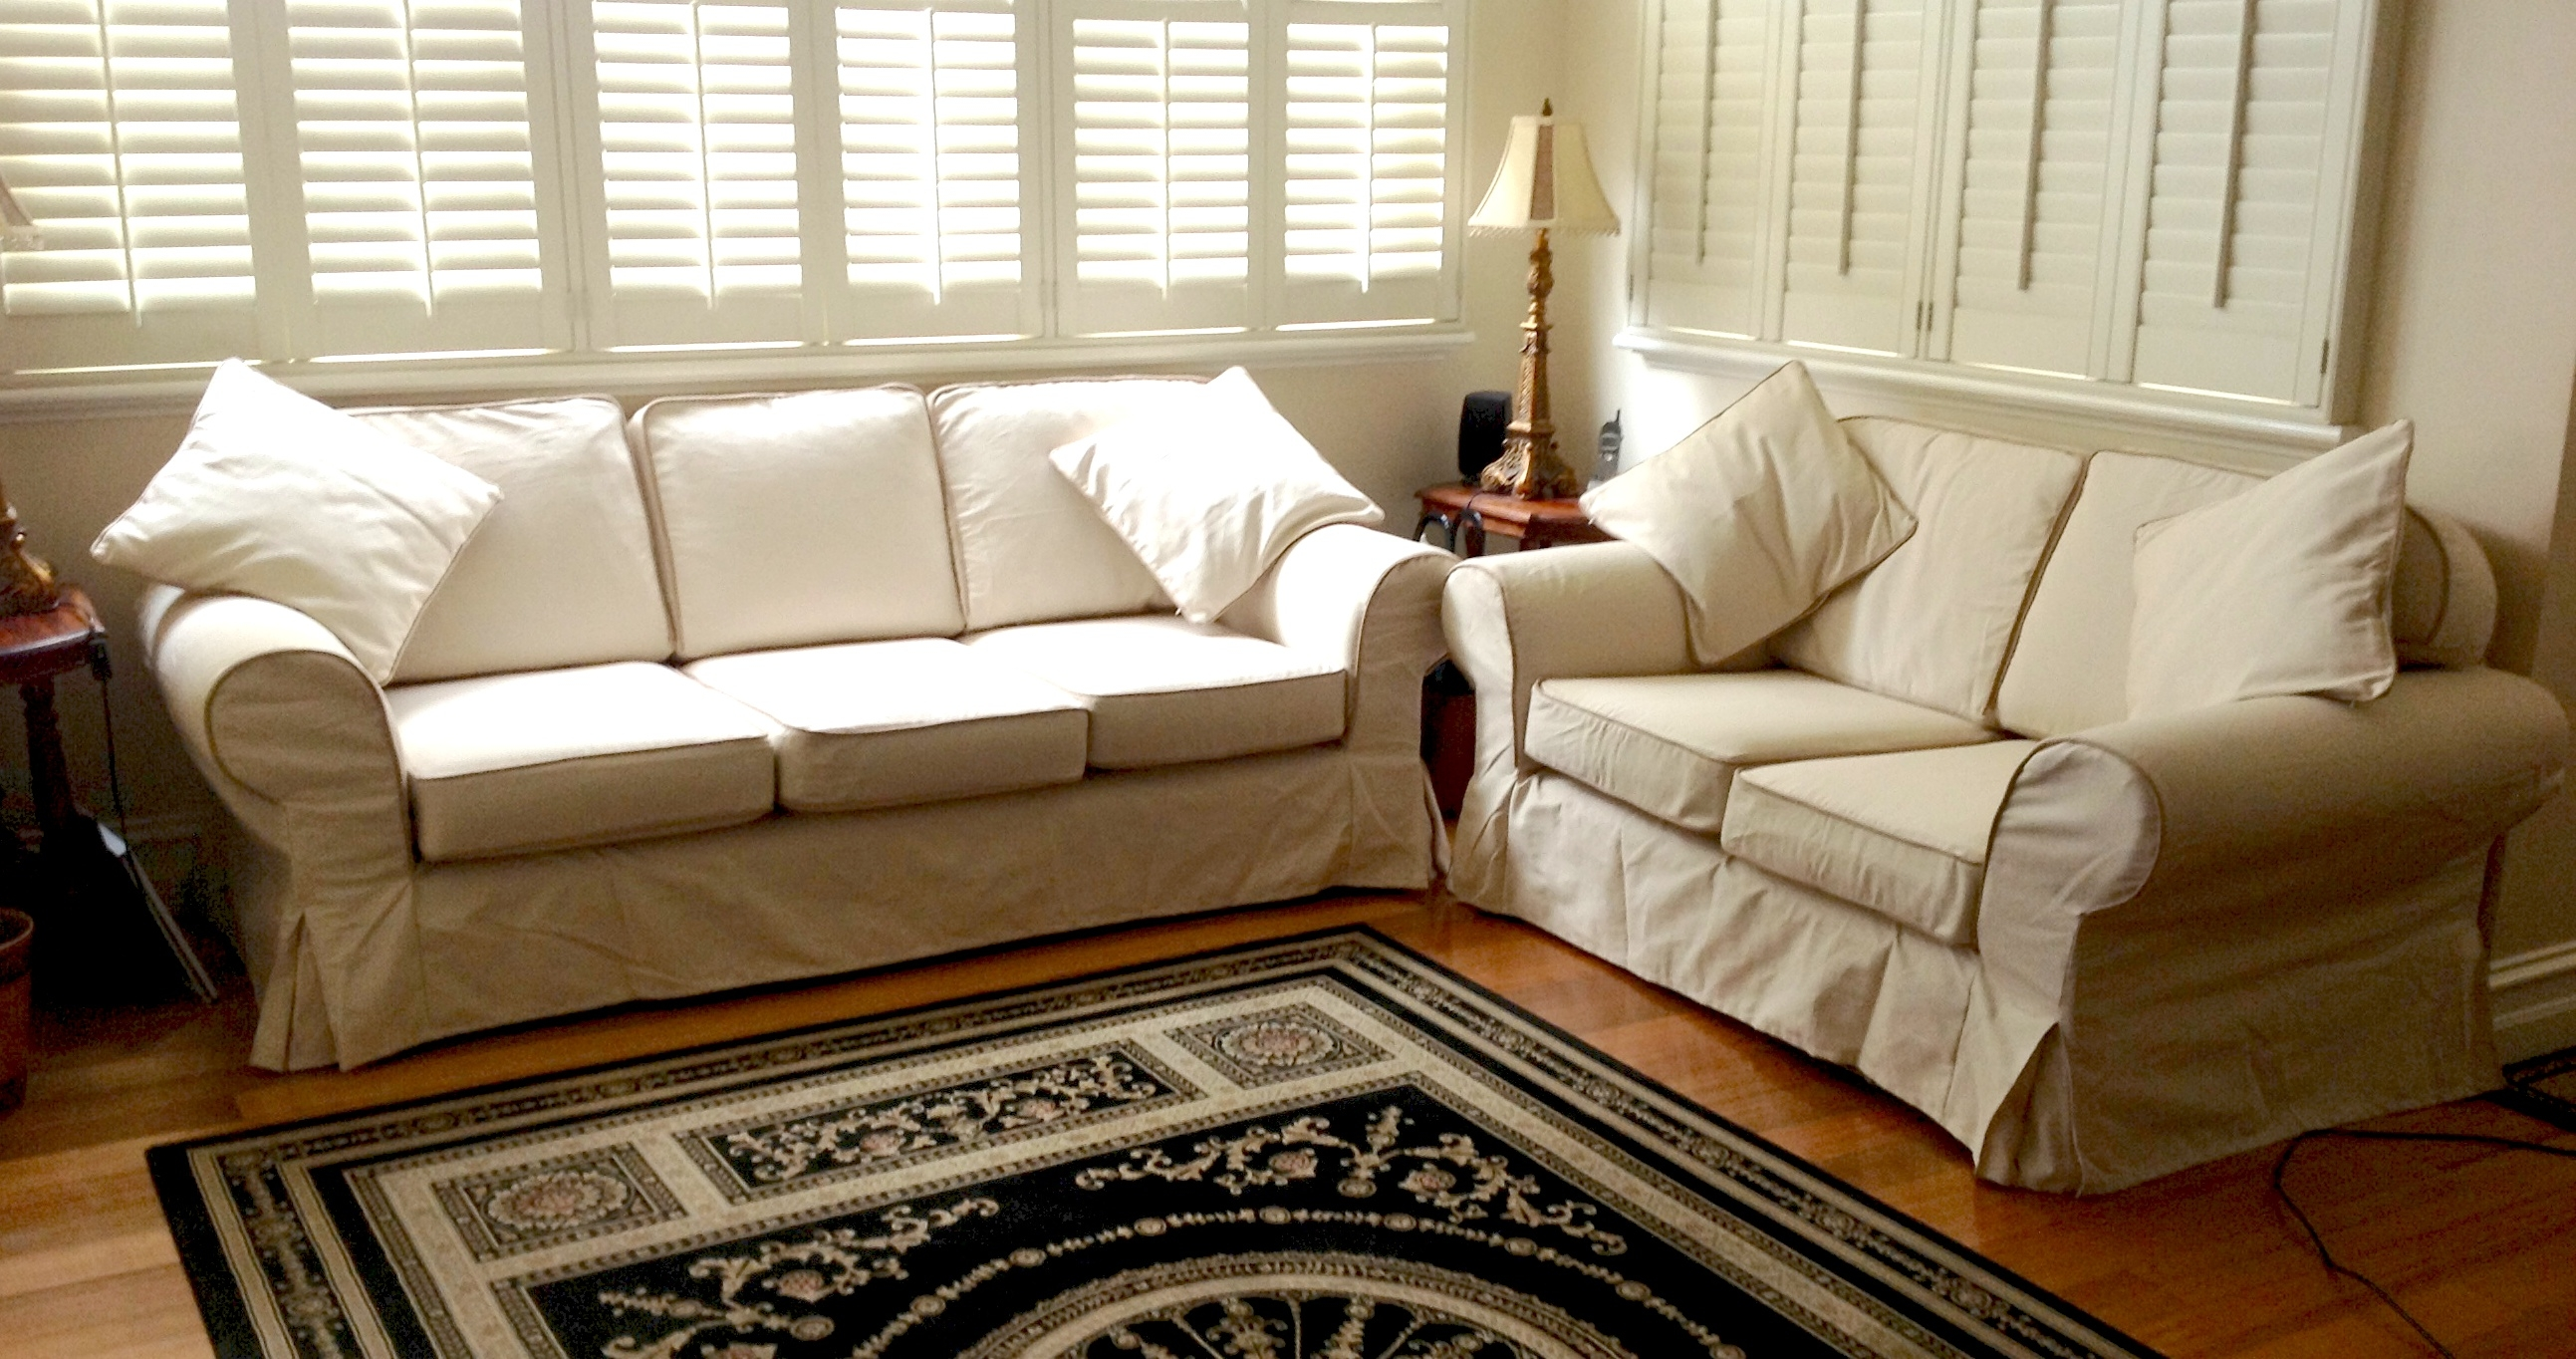 Custom Slipcovers And Couch Cover For Any Sofa Online With Customized Sofas (Image 5 of 15)